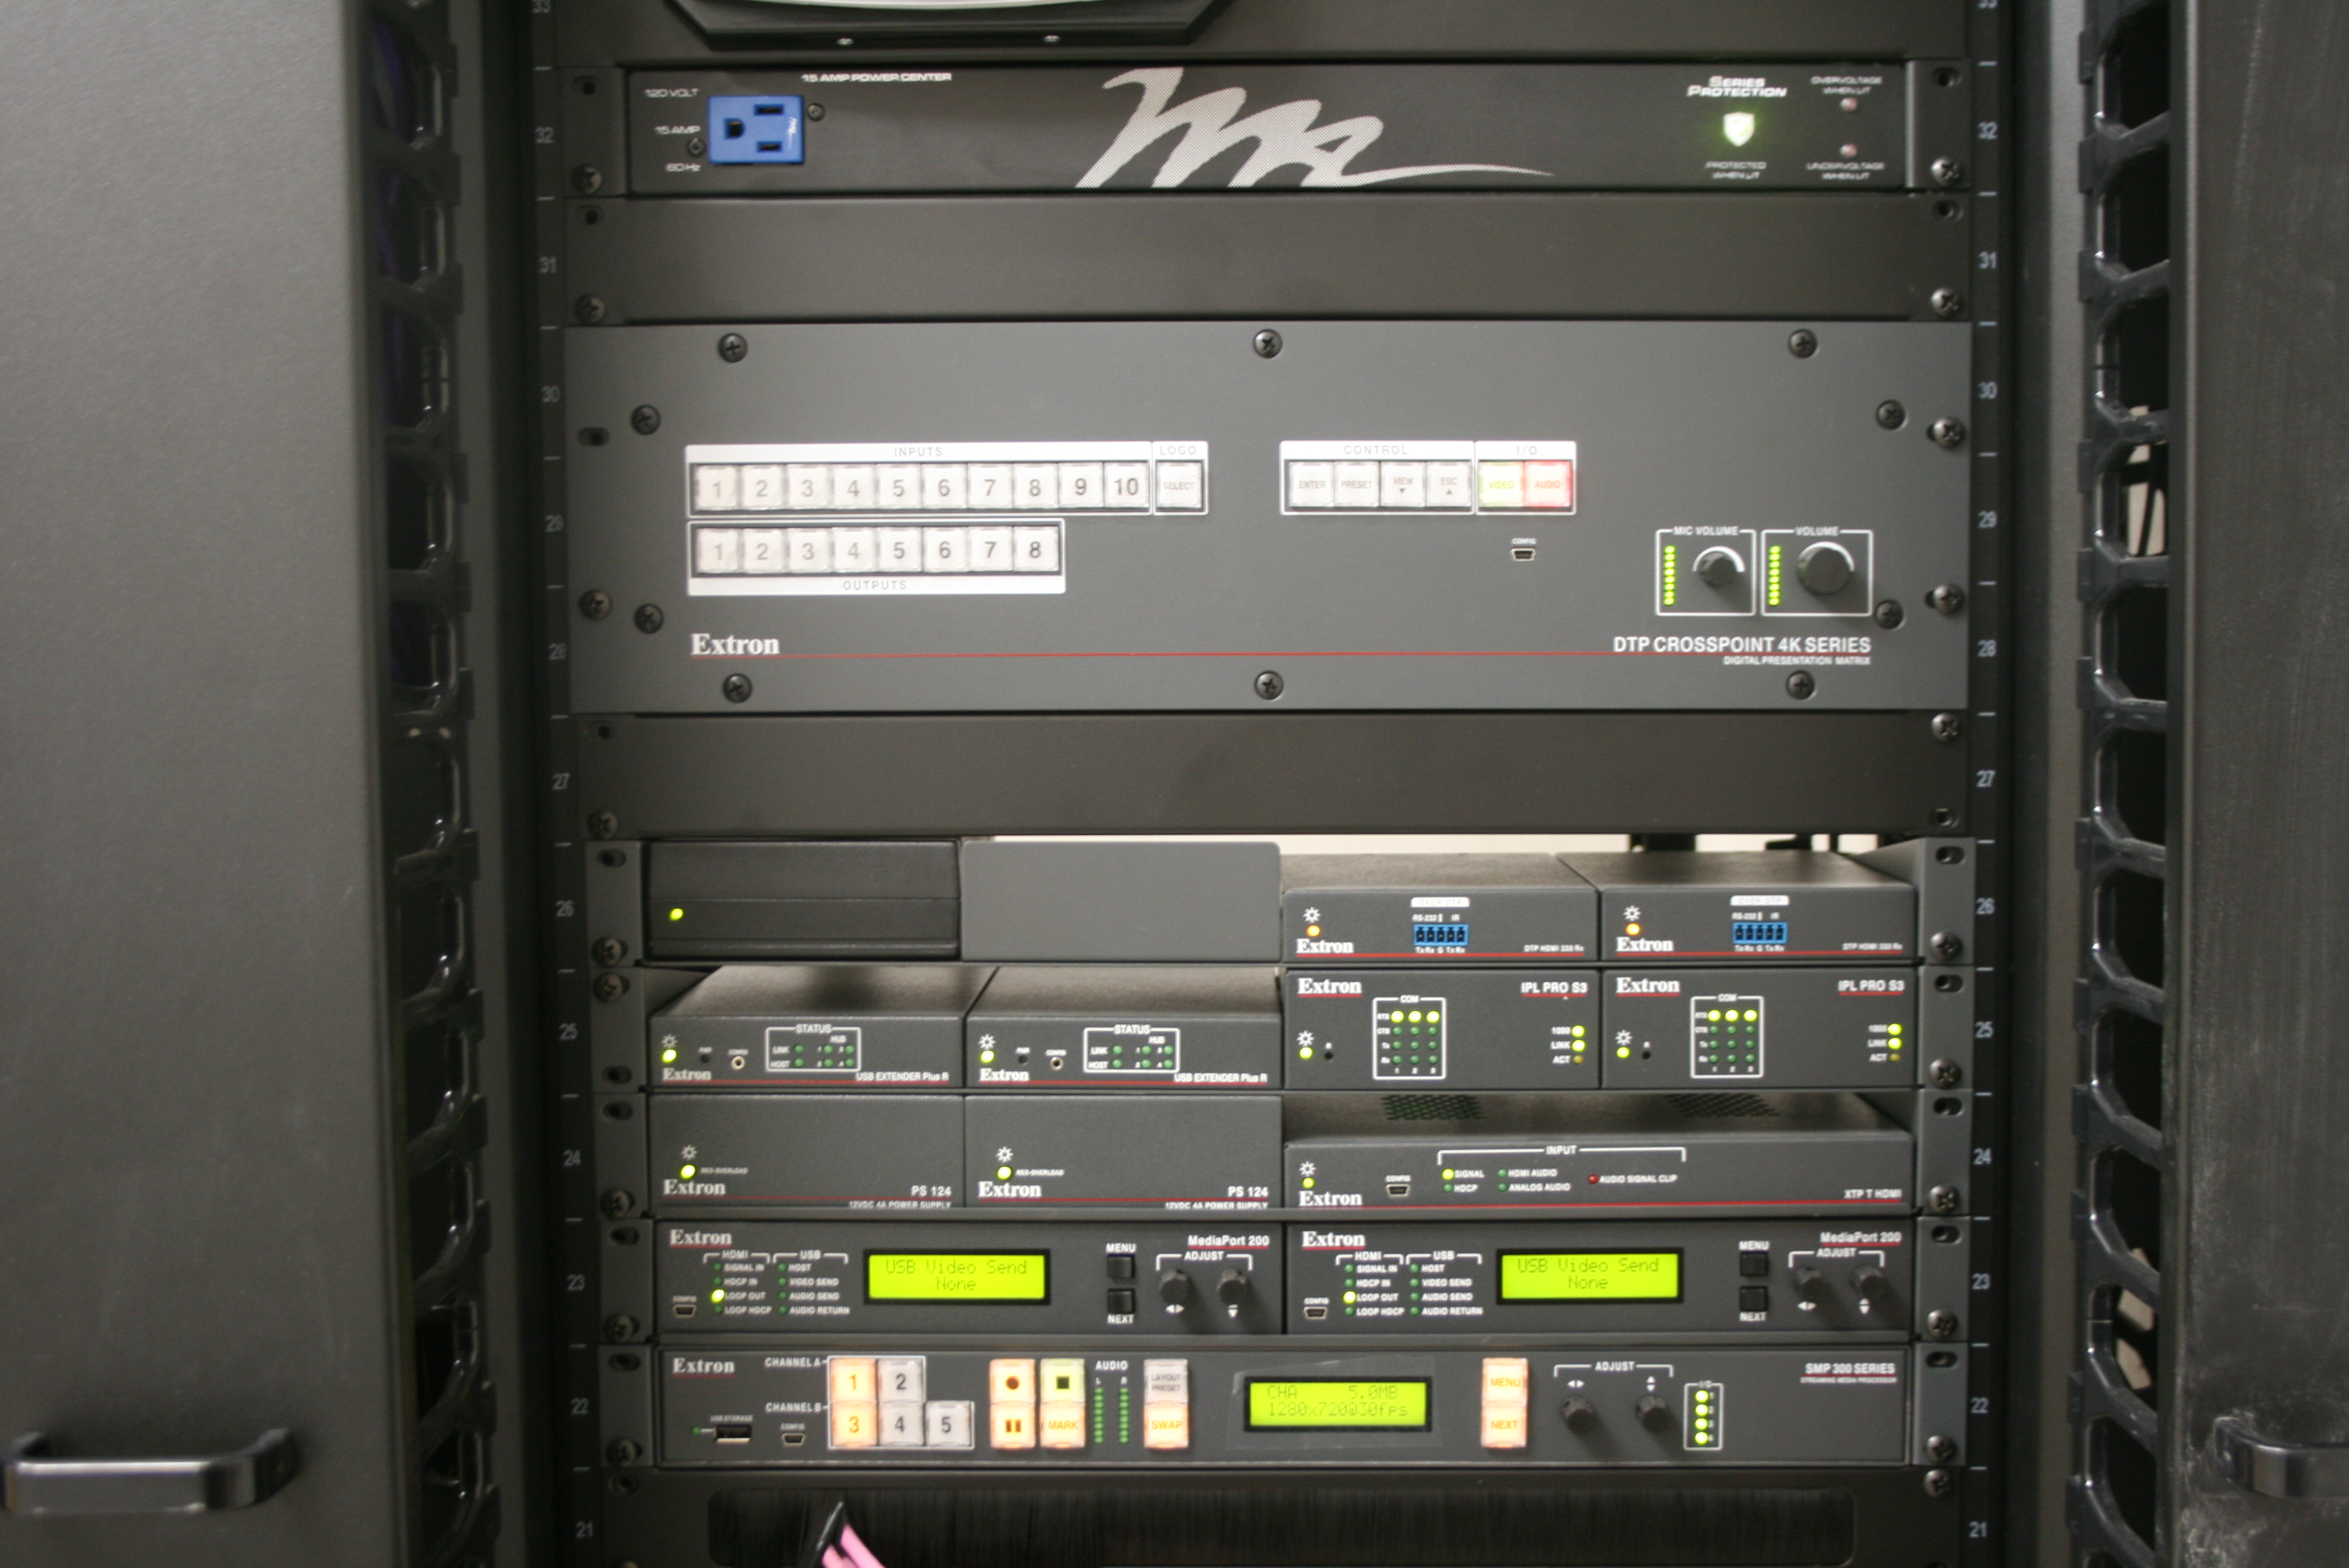 An Extron DTP CrossPoint 4K matrix switcher installed in the lectern provides AV switching, signal extension, audio amplification, and system control processing.